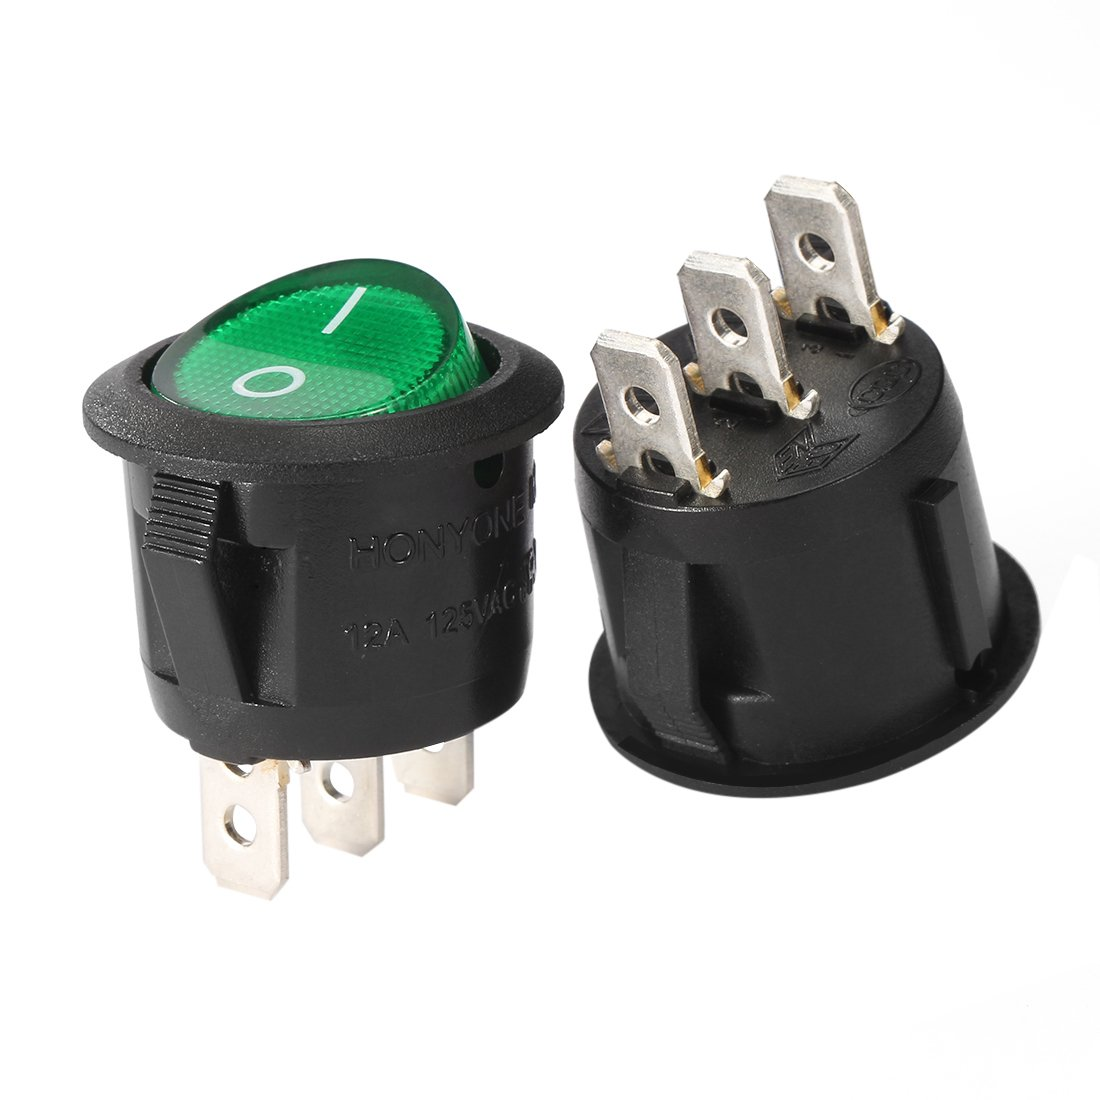 uxcell 5Pcs AC250V//10A 125V//12A 3P SPST I//O Round Button Boat Rocker Switch Toggle On//Off